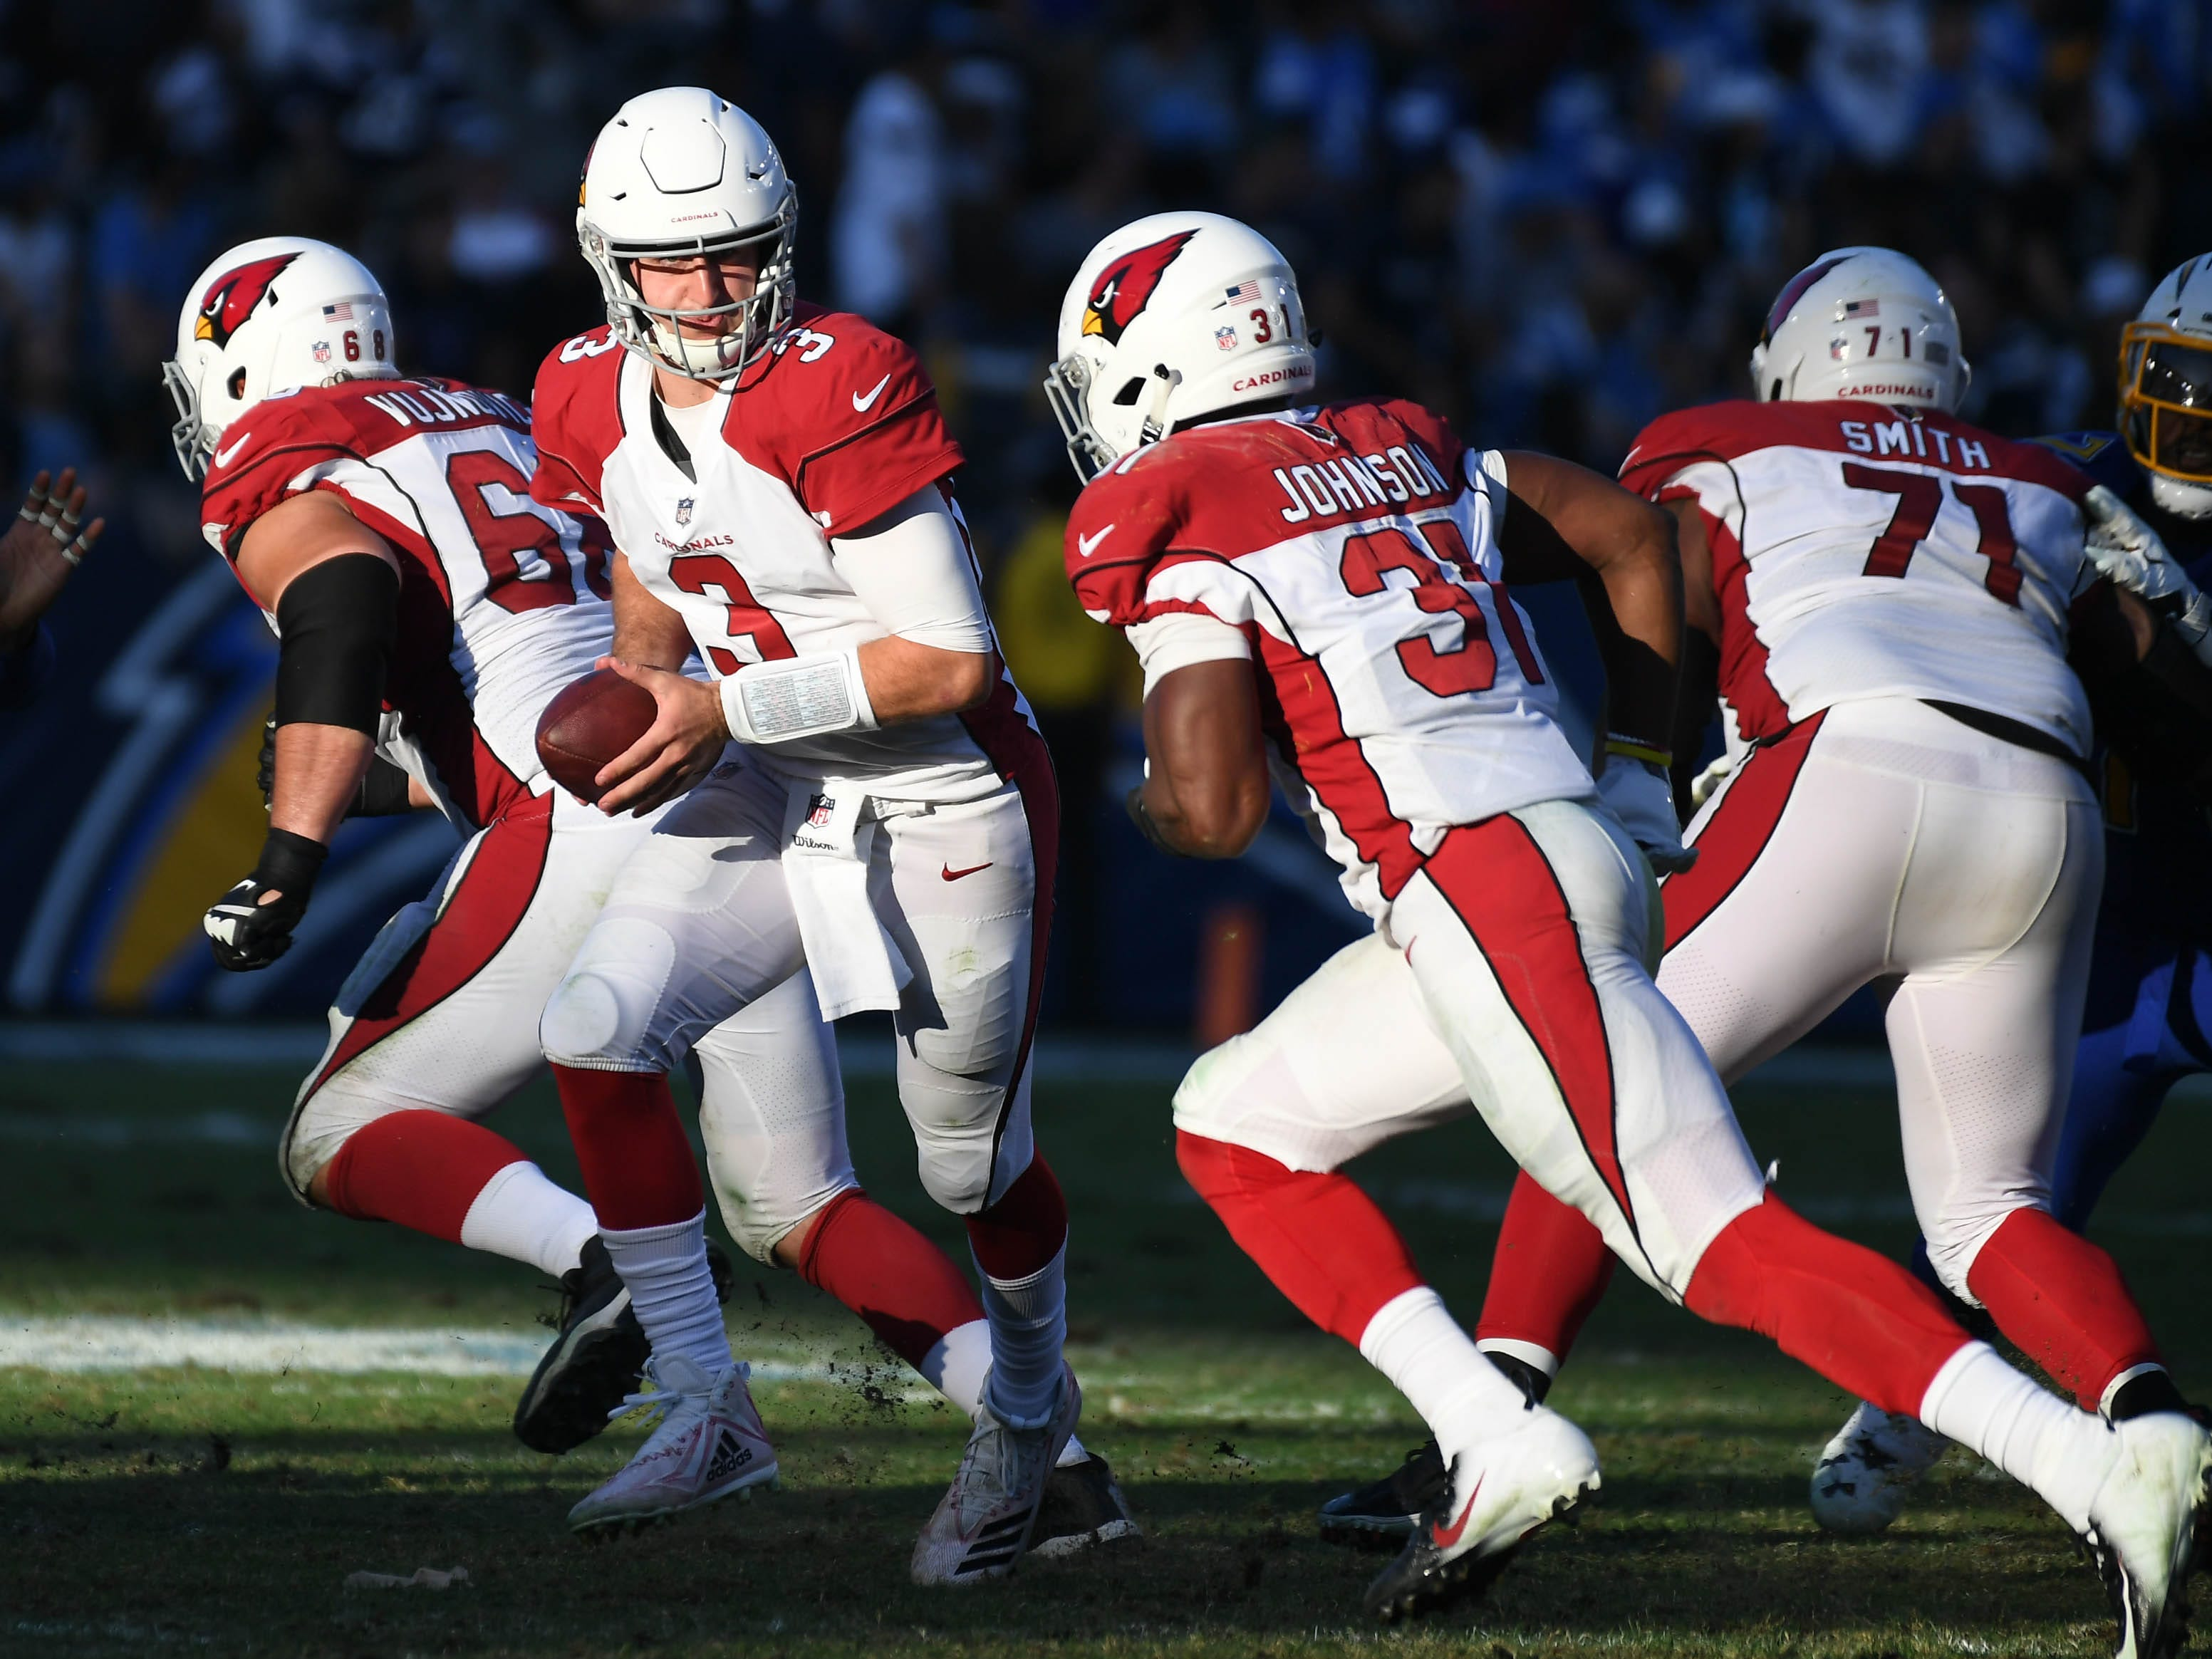 Nov 25, 2018; Carson, CA, USA; Arizona Cardinals quarterback Josh Rosen (3) hands the ball to running back David Johnson (31) against the Los Angeles Chargers in the second half at the StubHub Center.